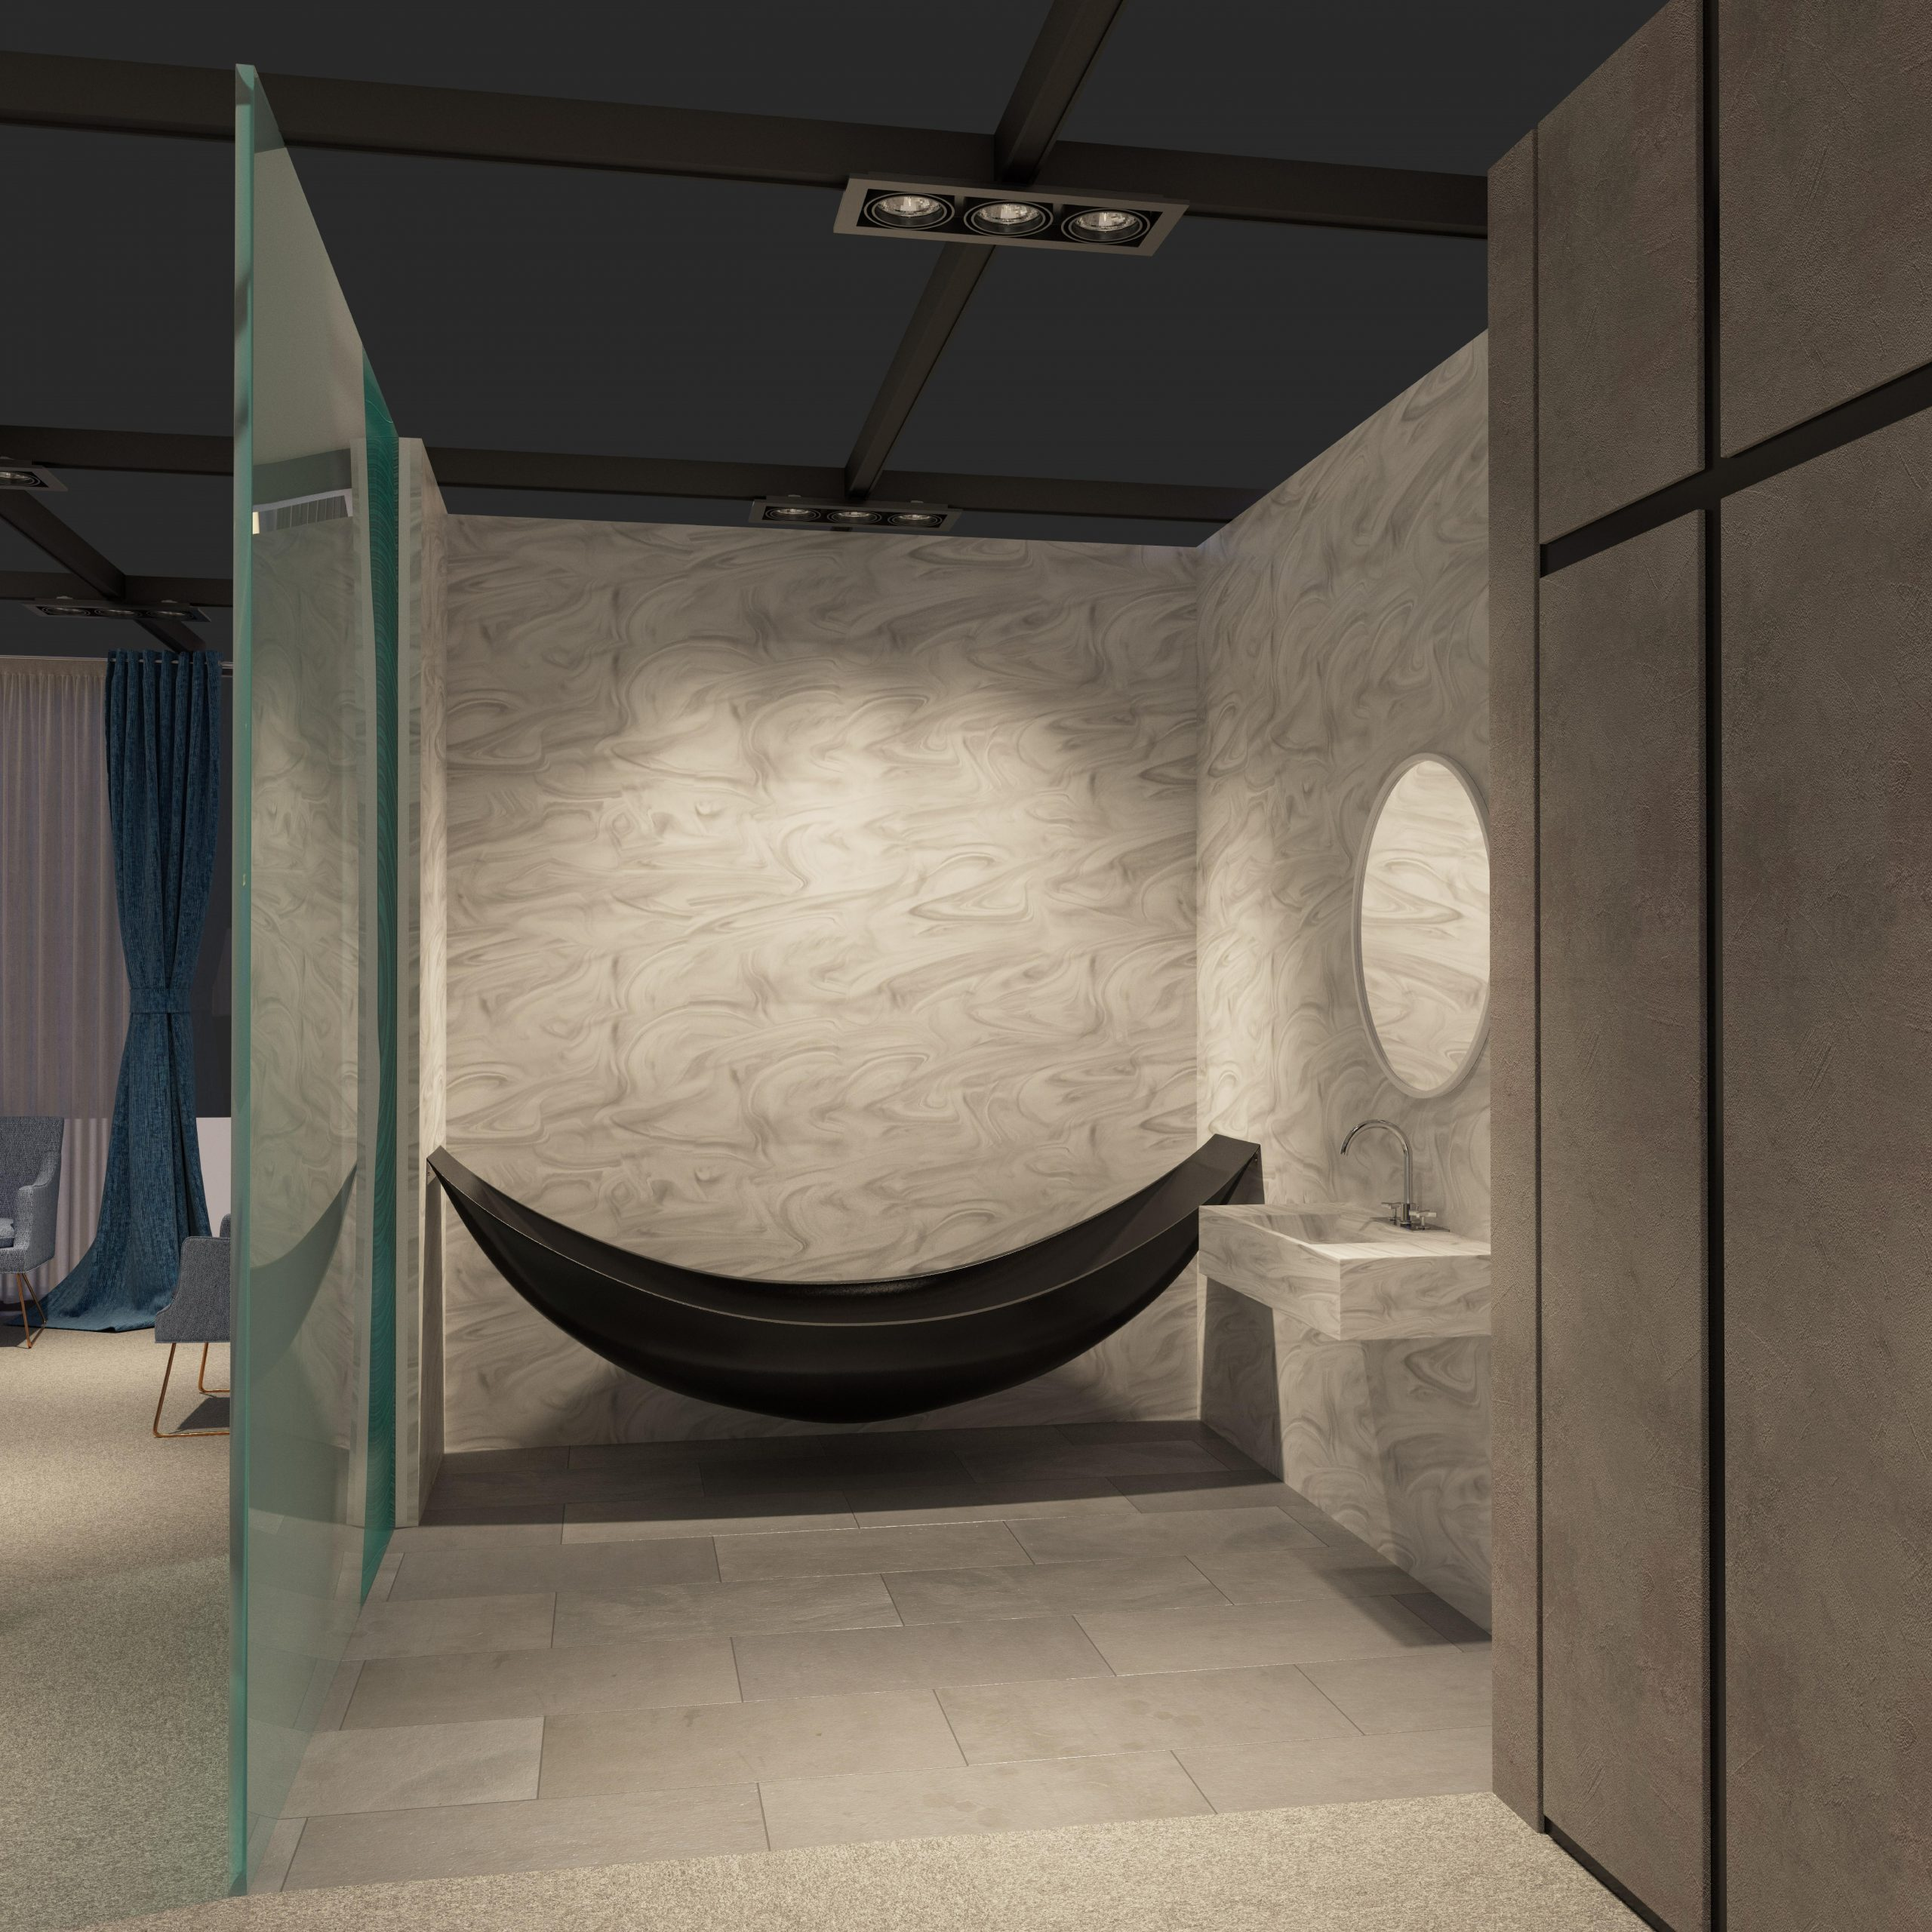 Hotel room of the future render of the bathroom design